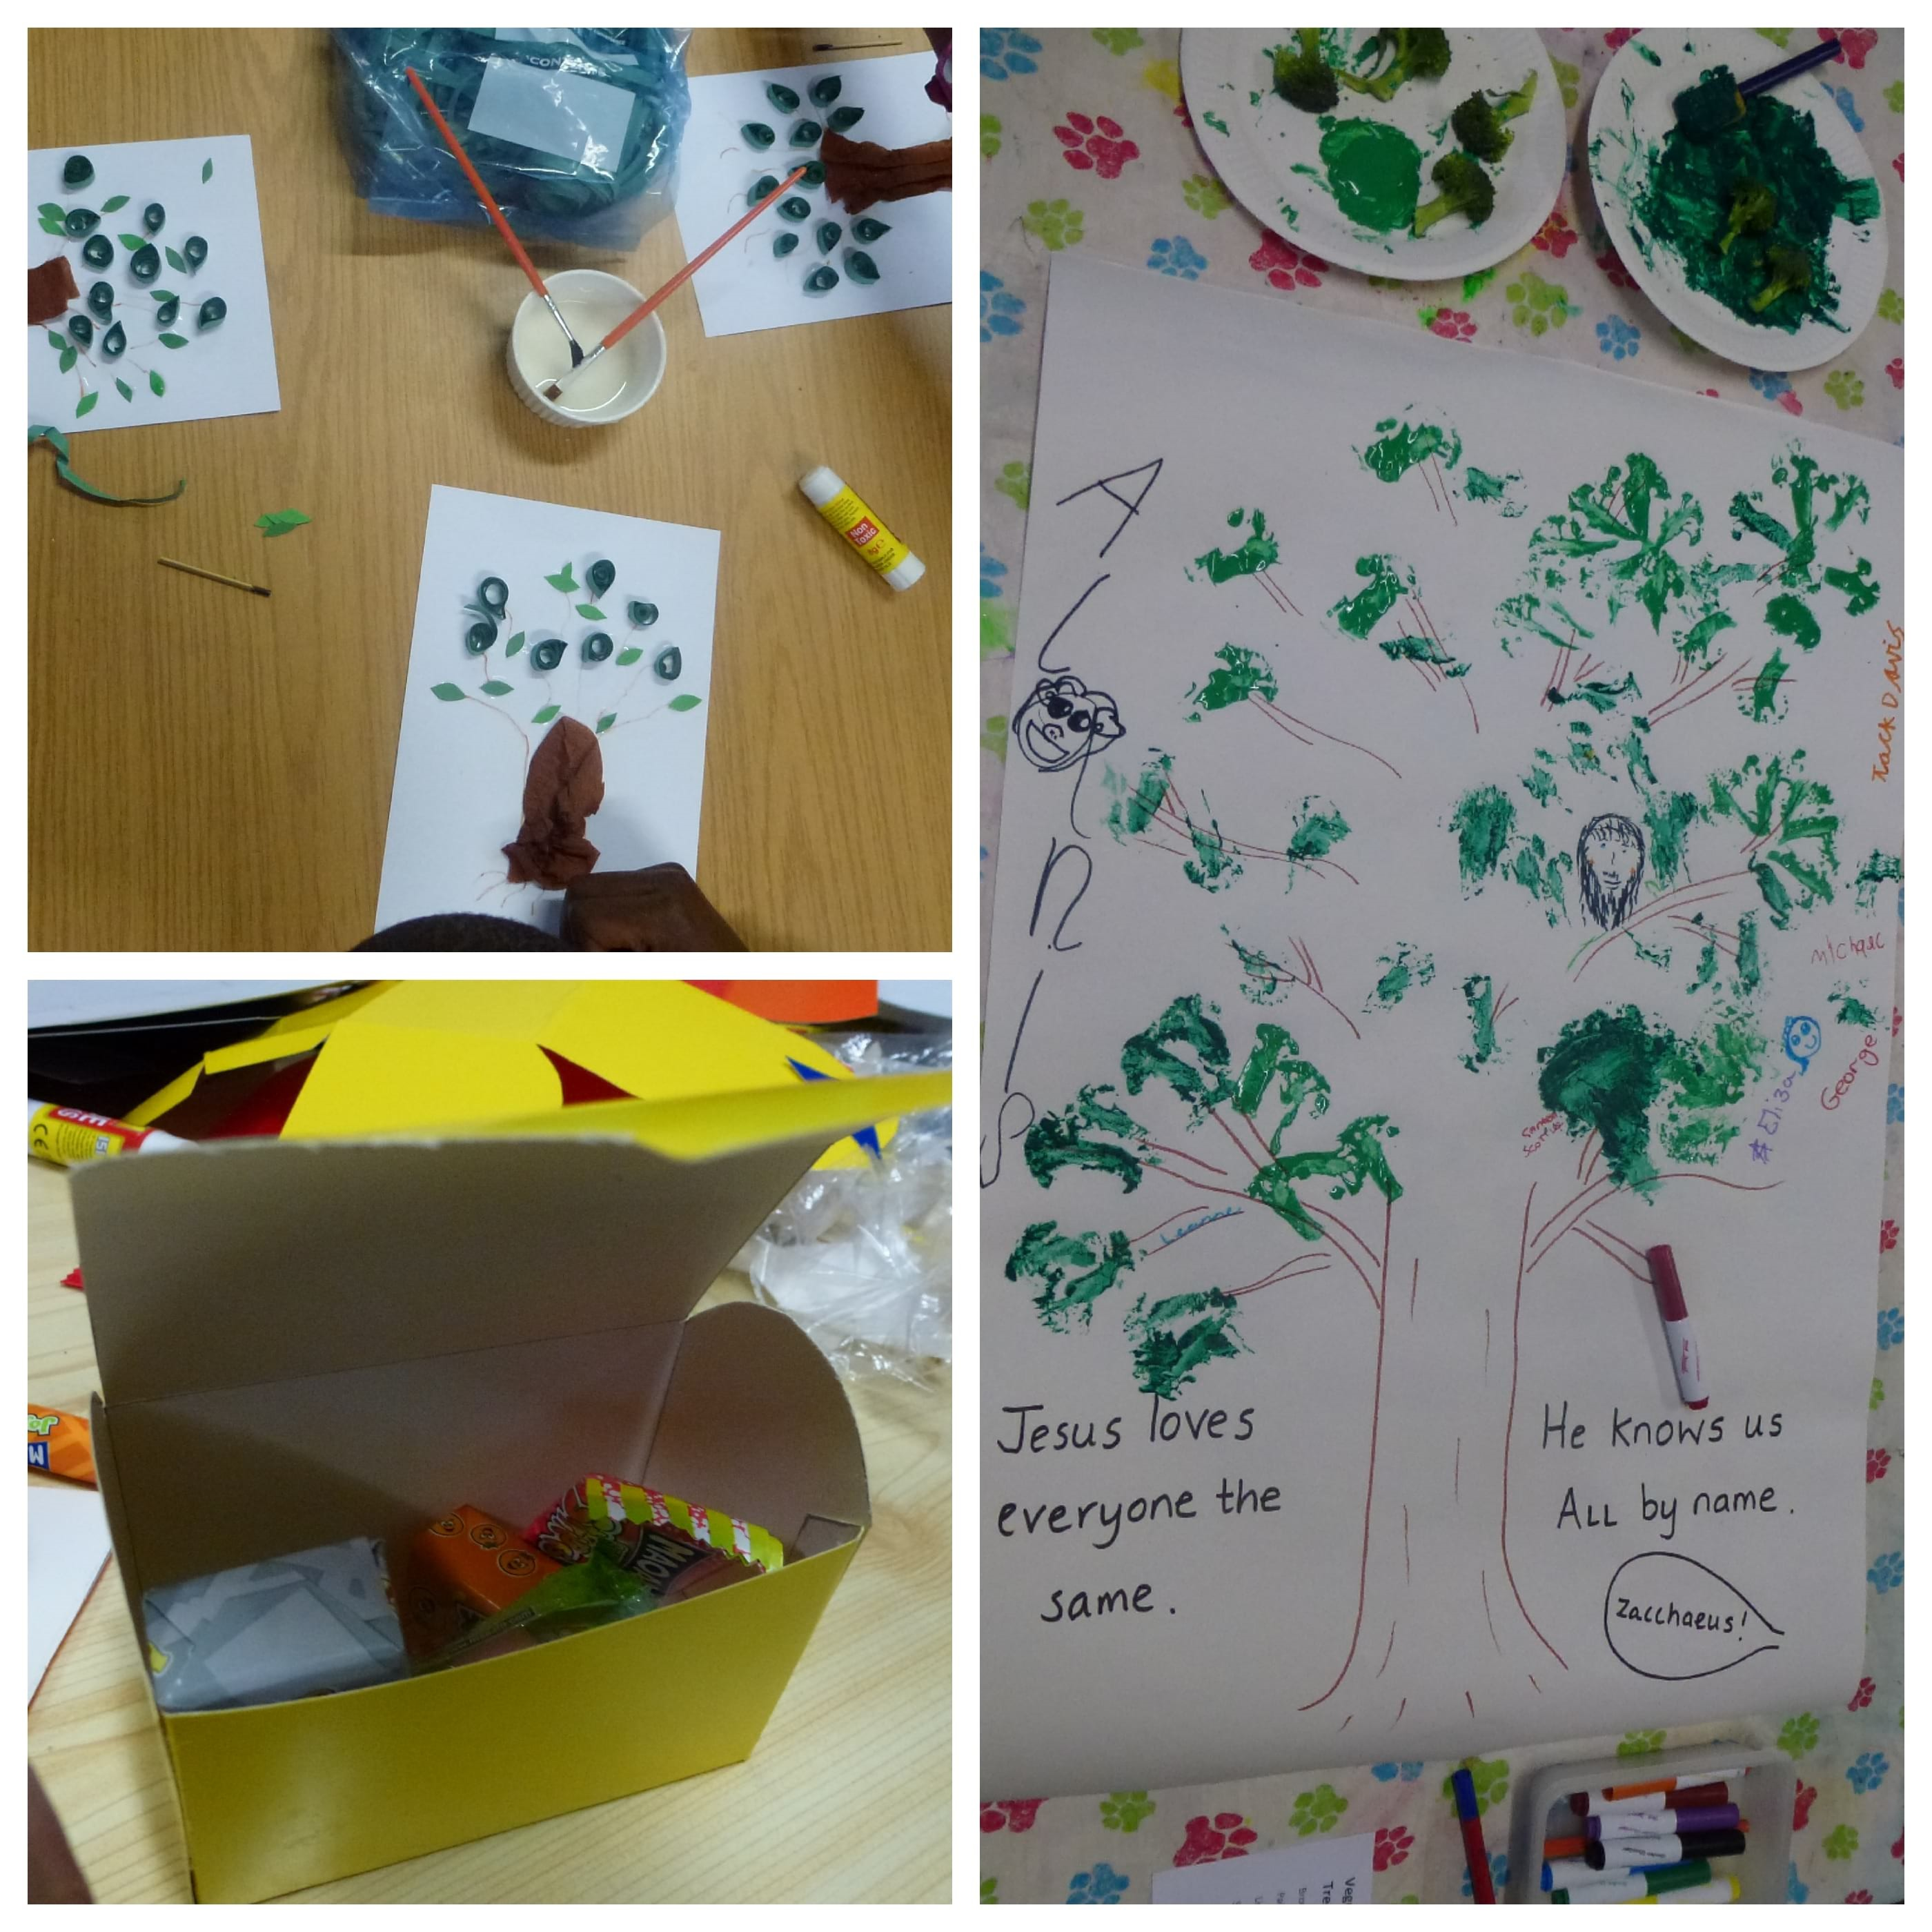 Zacchaeus meets Jesus was the theme for March Messy Church